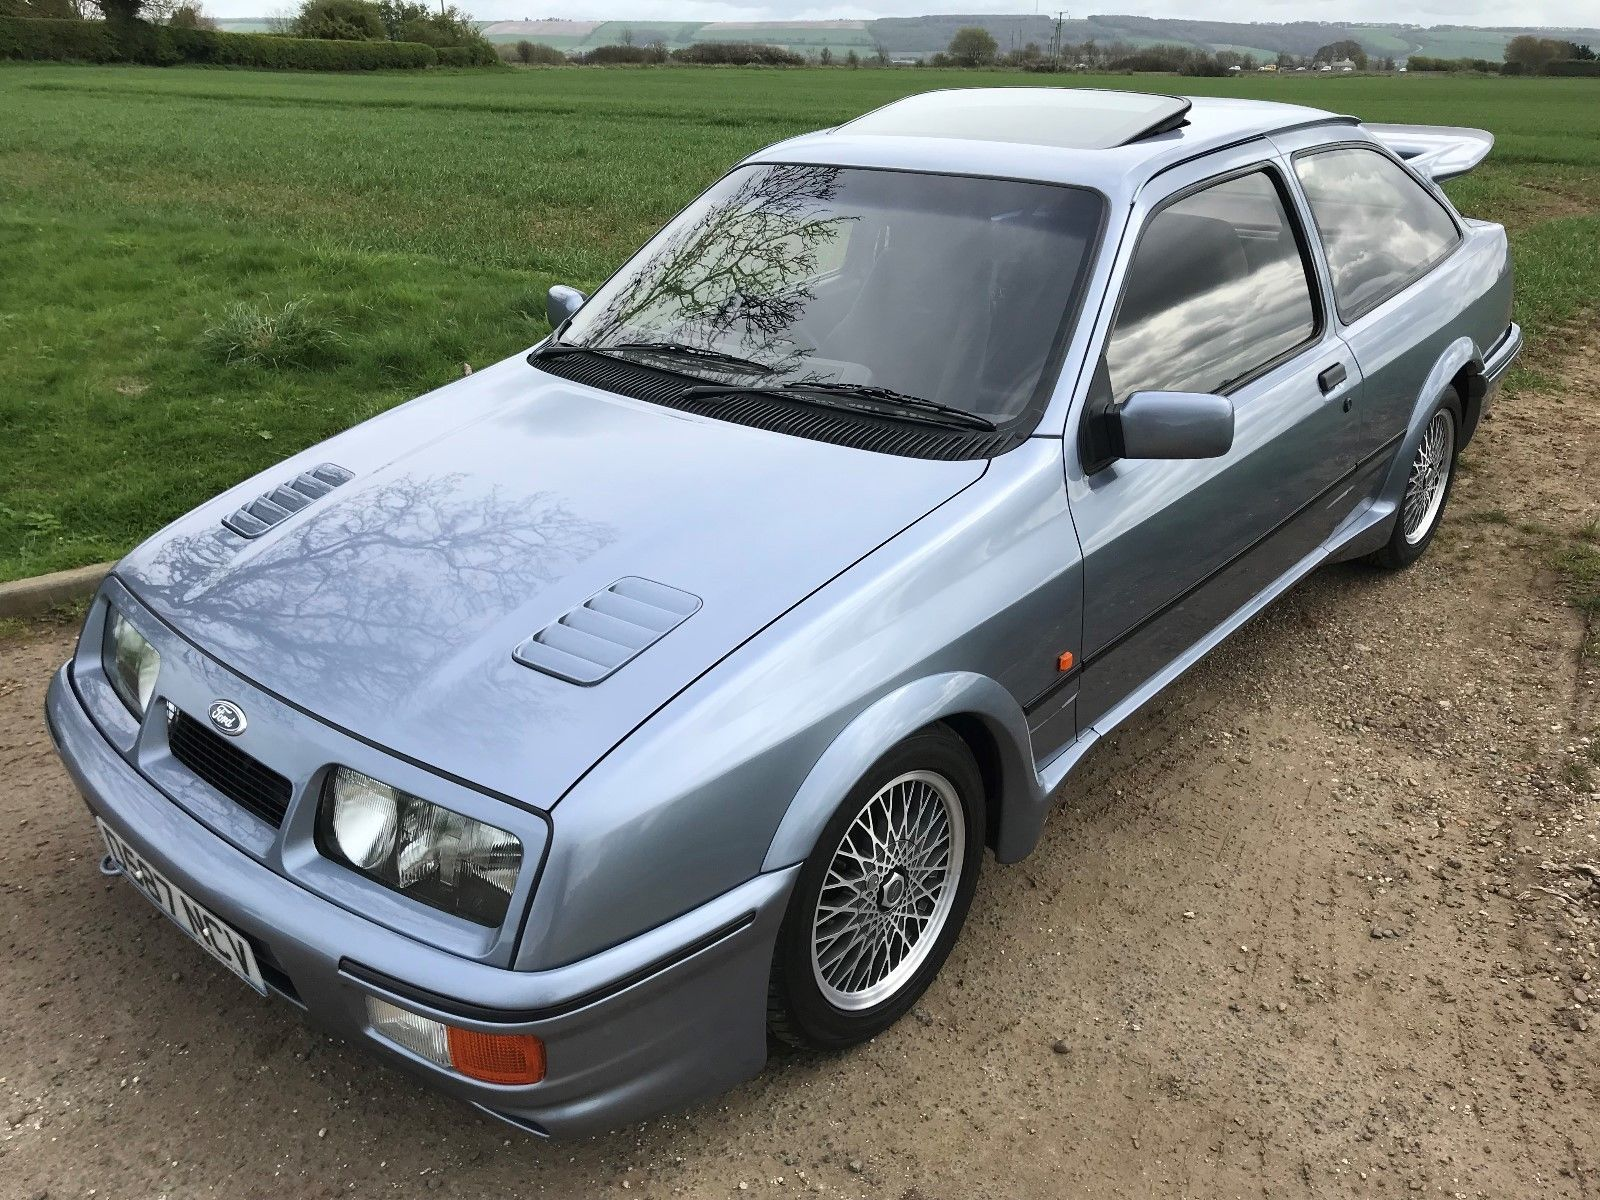 Ebay 1987 Ford Sierra Rs Cosworth 3dr Moonstone Blue In Exceptional Condition Cars 1980s Ford Sierra Ford Ford Classic Cars